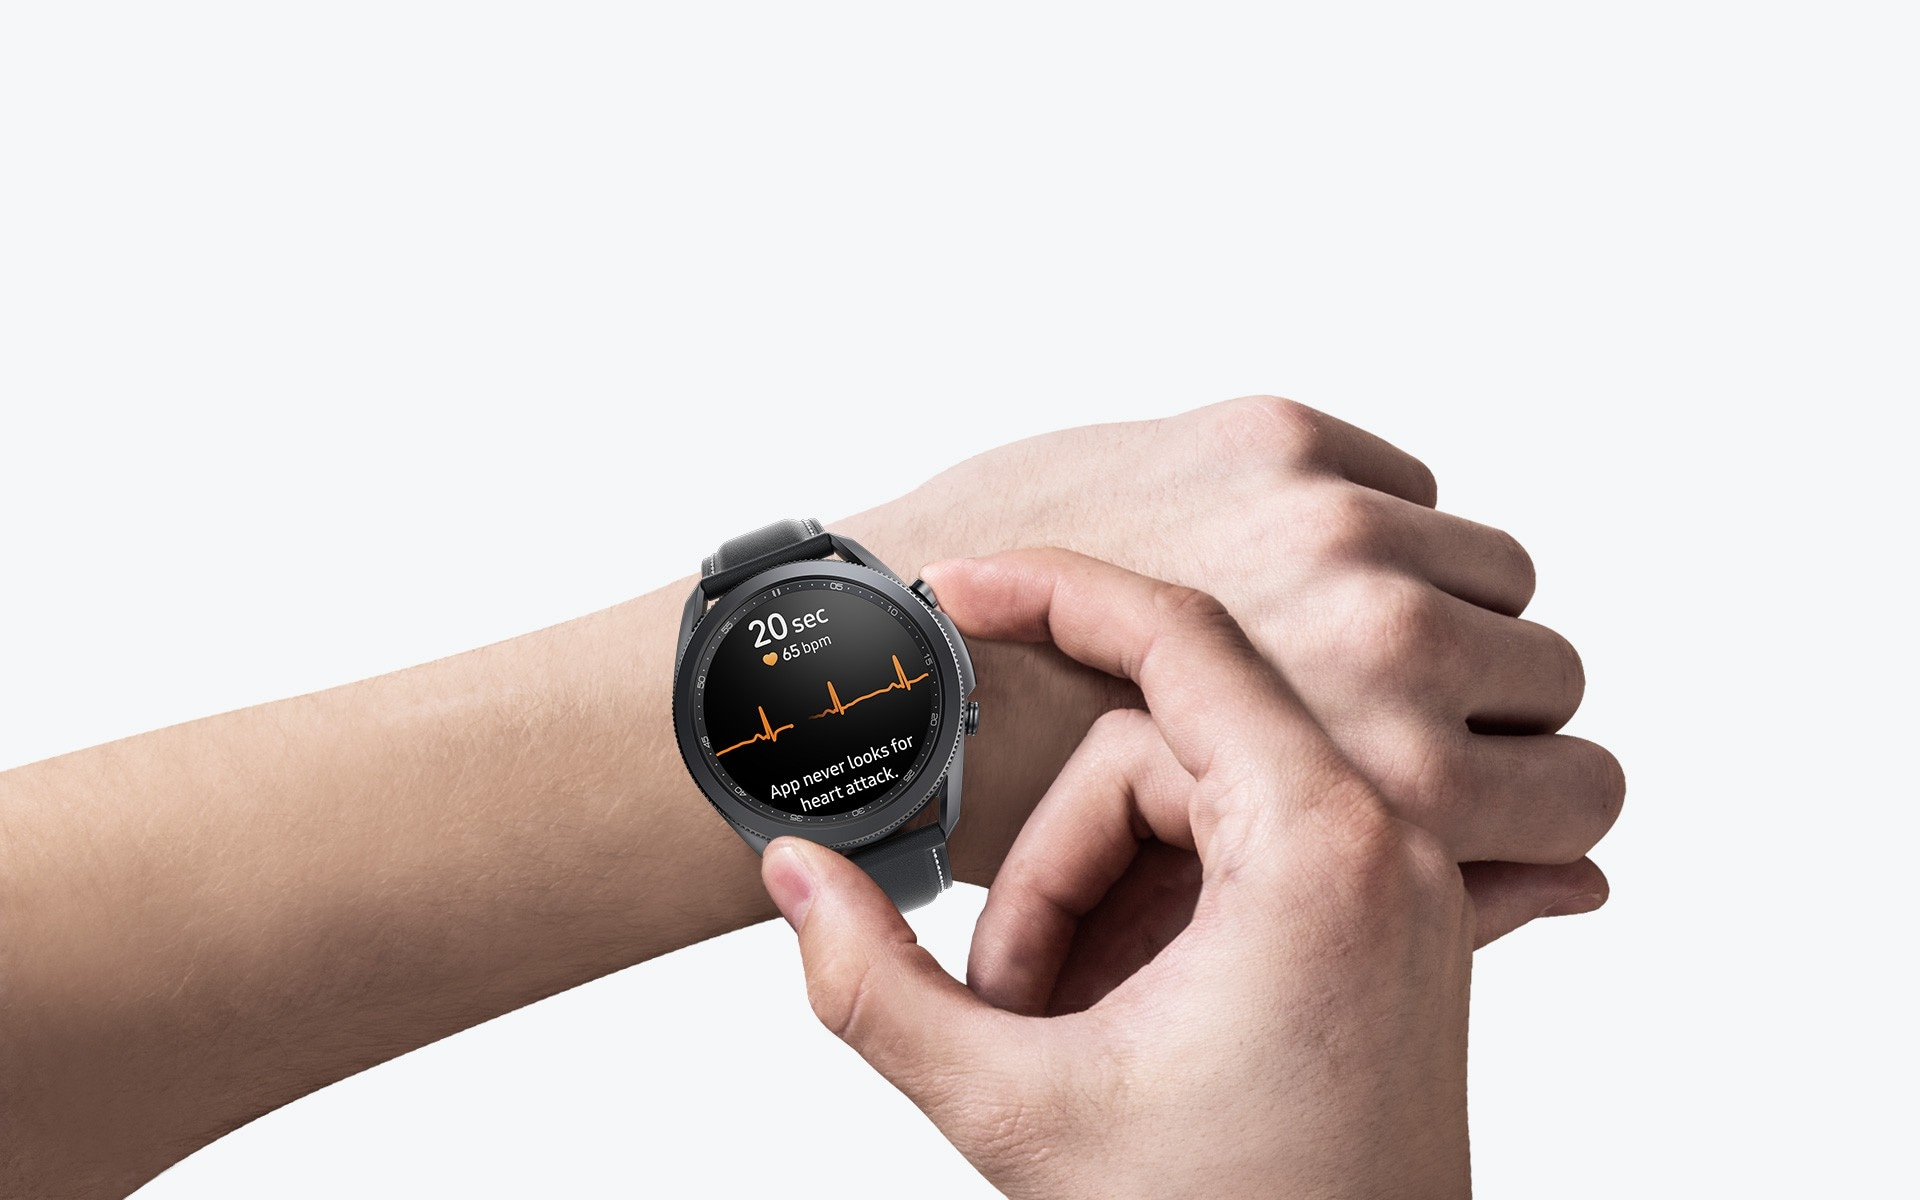 A view of an arm wearing the 45mm Galaxy Watch3 in Mystic Black. A hand presses a button on the side of the watch to measure ECG, with its GUI seen on the watch face.